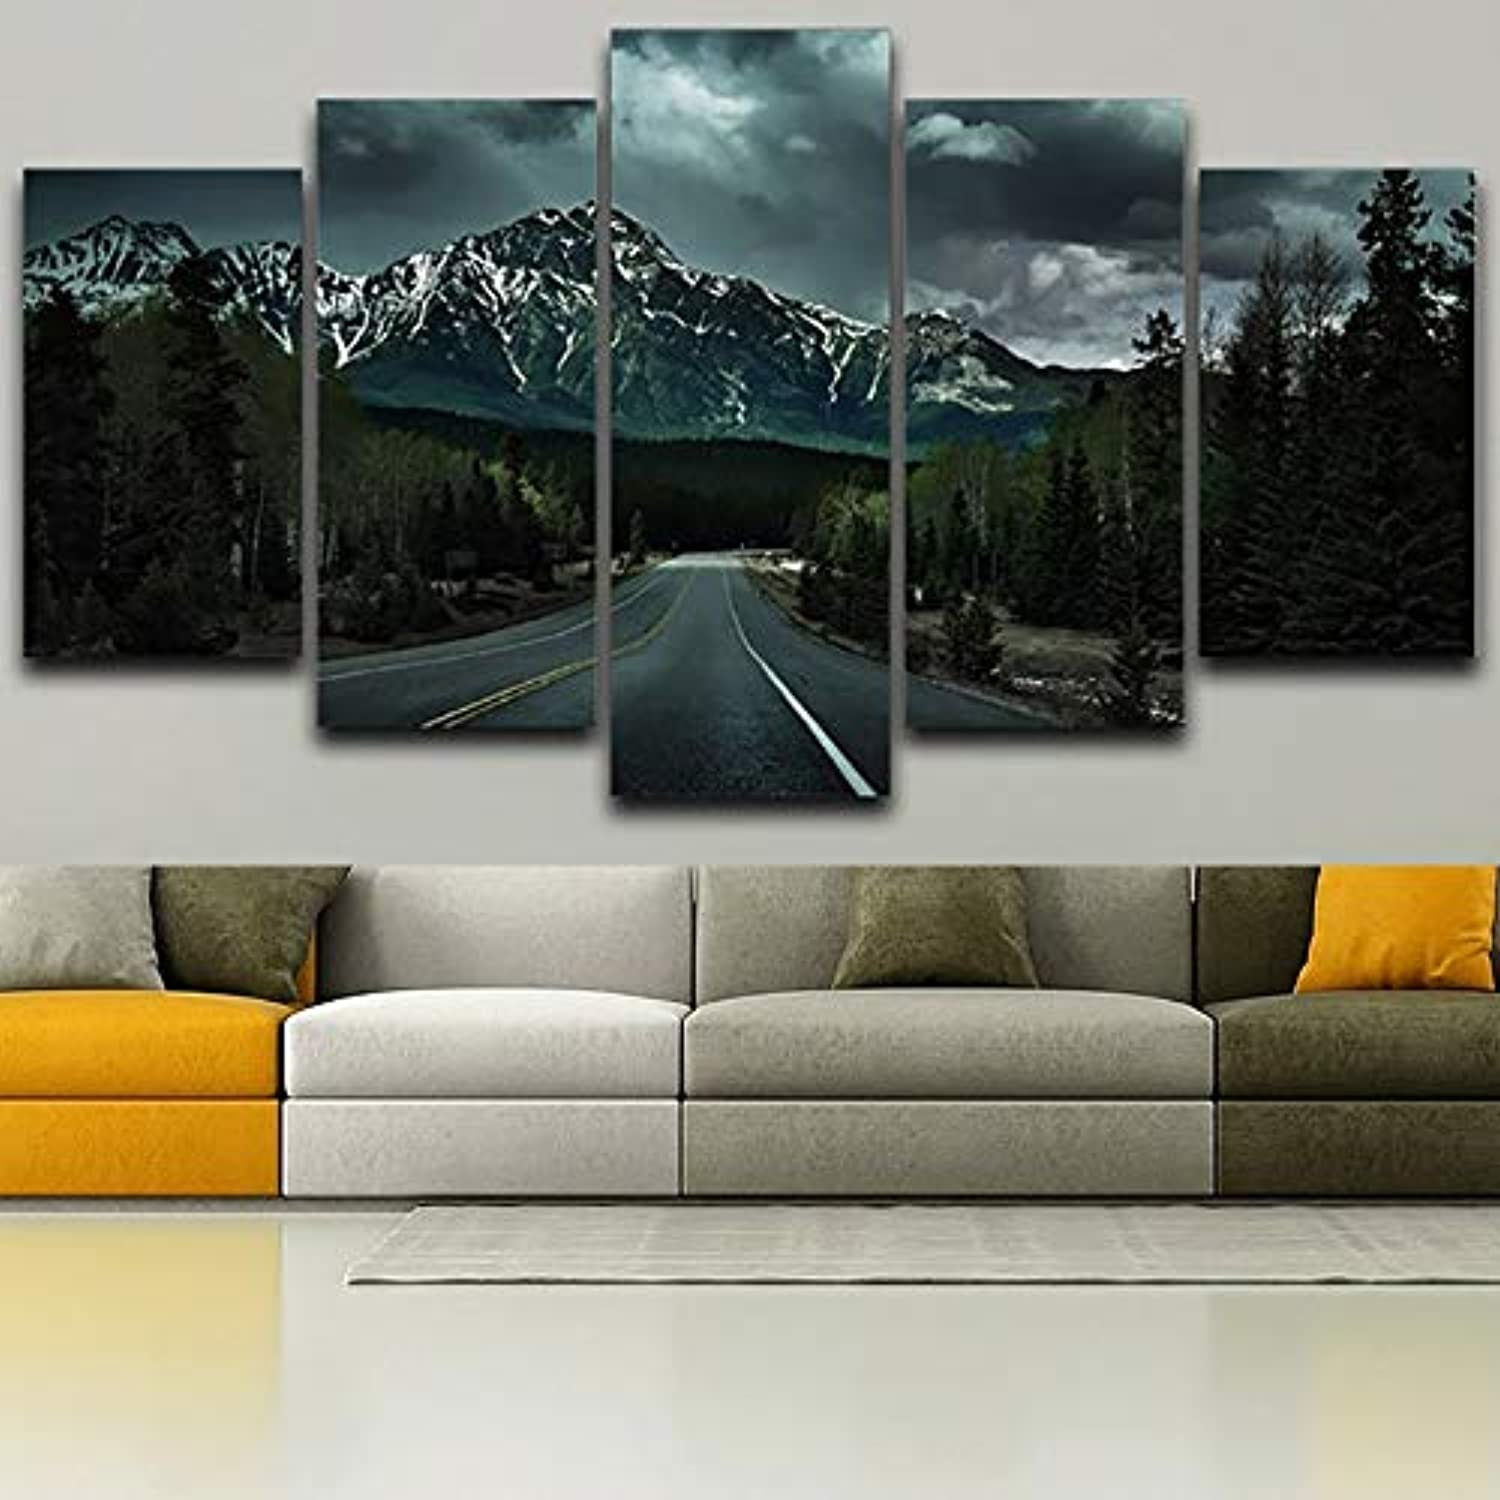 Wall Living Room Printed Pictures Home Decor Canvas 5 Panel Dark Mountains Sky Scenery Modern HD Frame Painting Posters